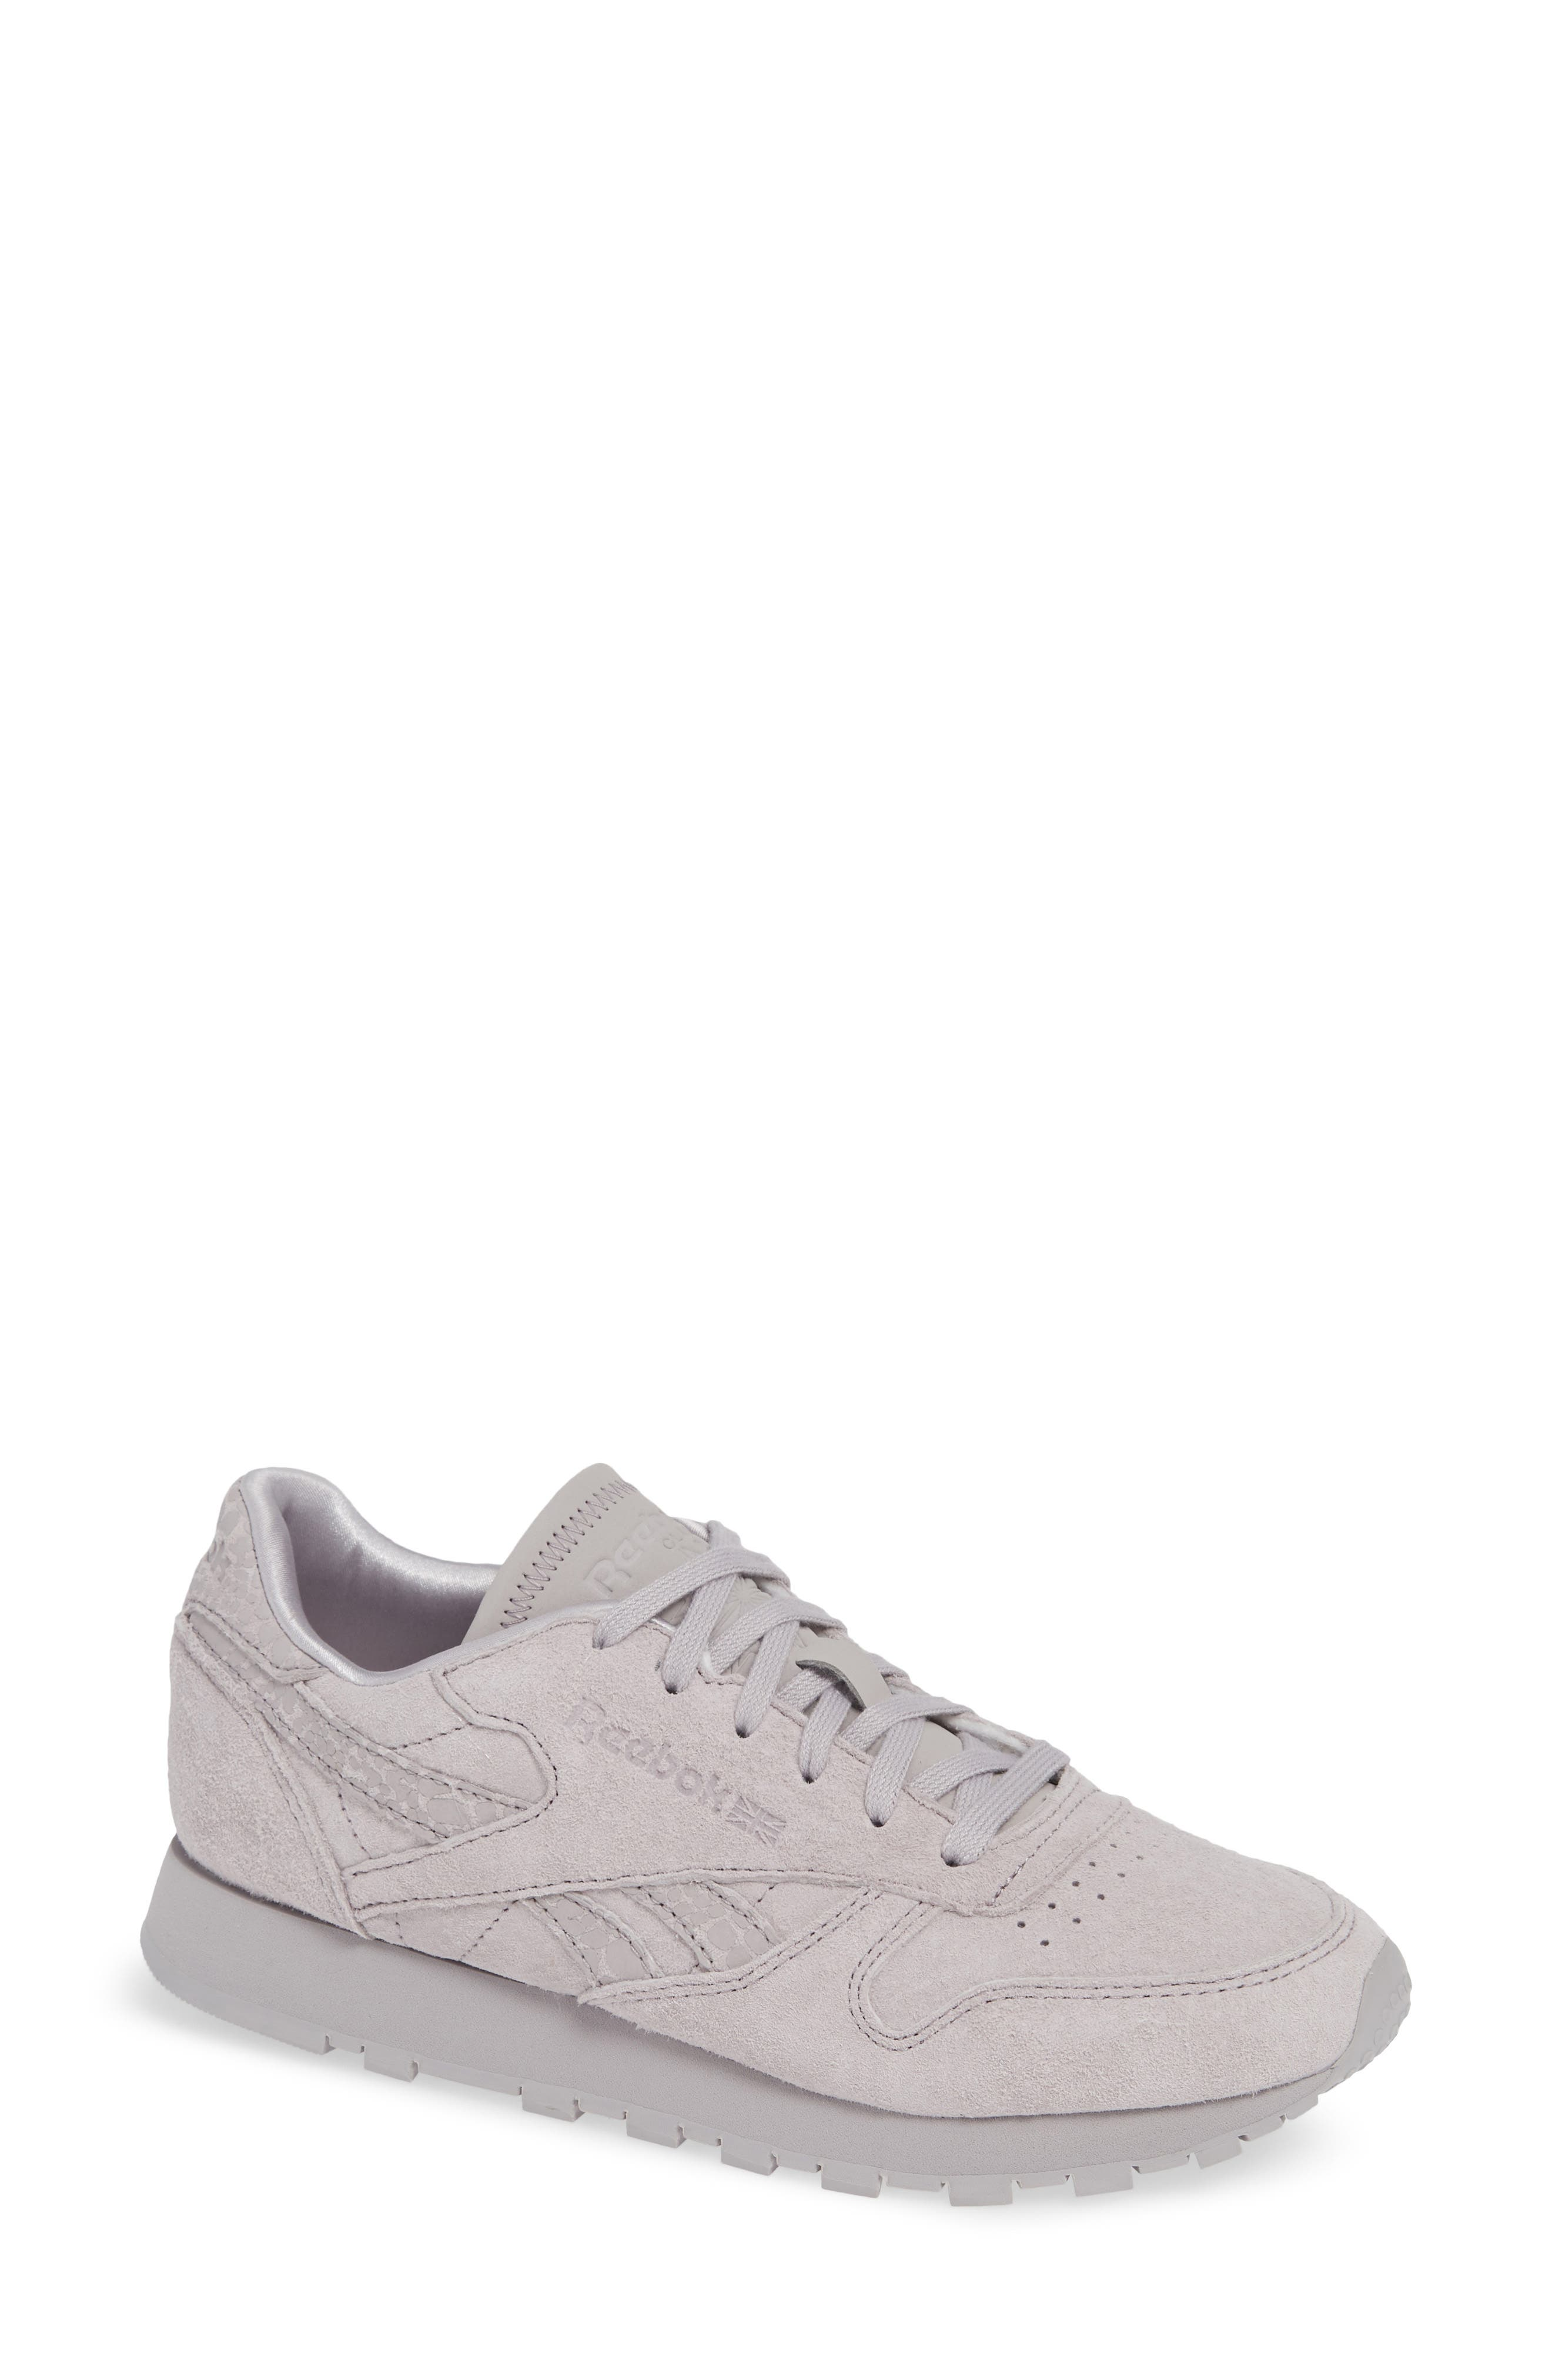 Classic Leather Sneaker,                             Main thumbnail 1, color,                             WHISPER GREY